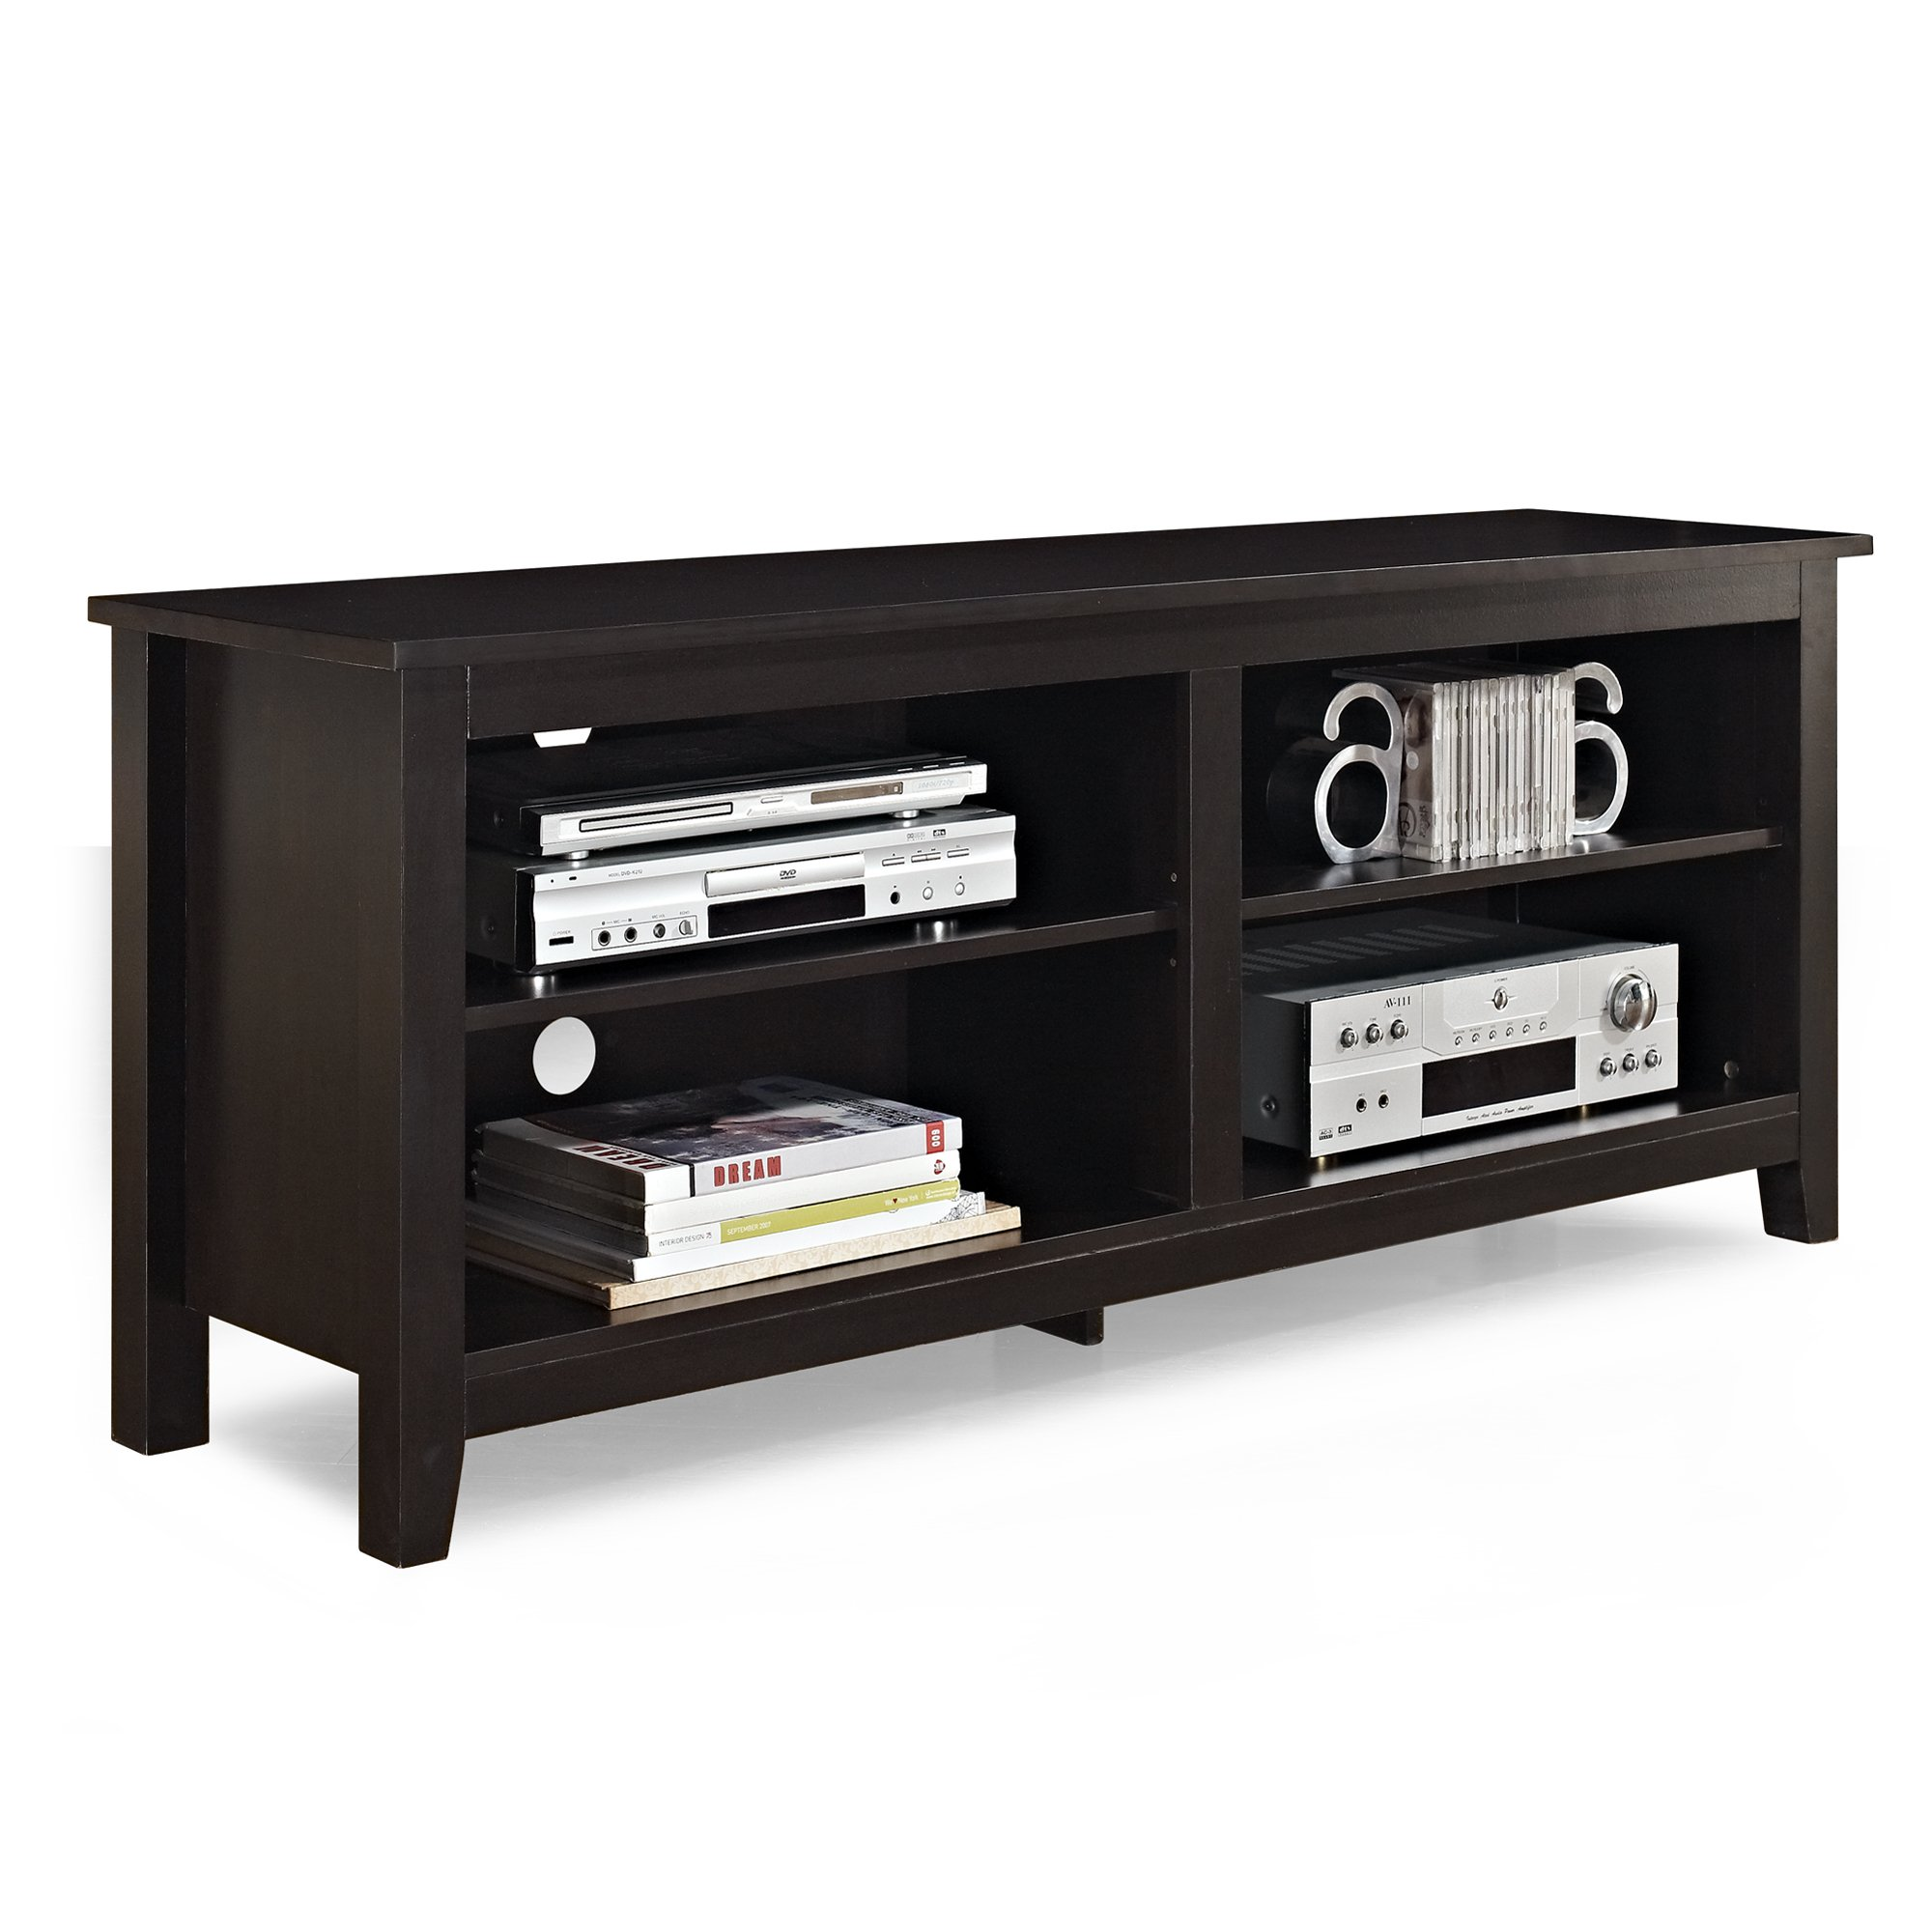 WE Furniture 58'' Wood TV Stand Storage Console, Espresso by WE Furniture (Image #3)